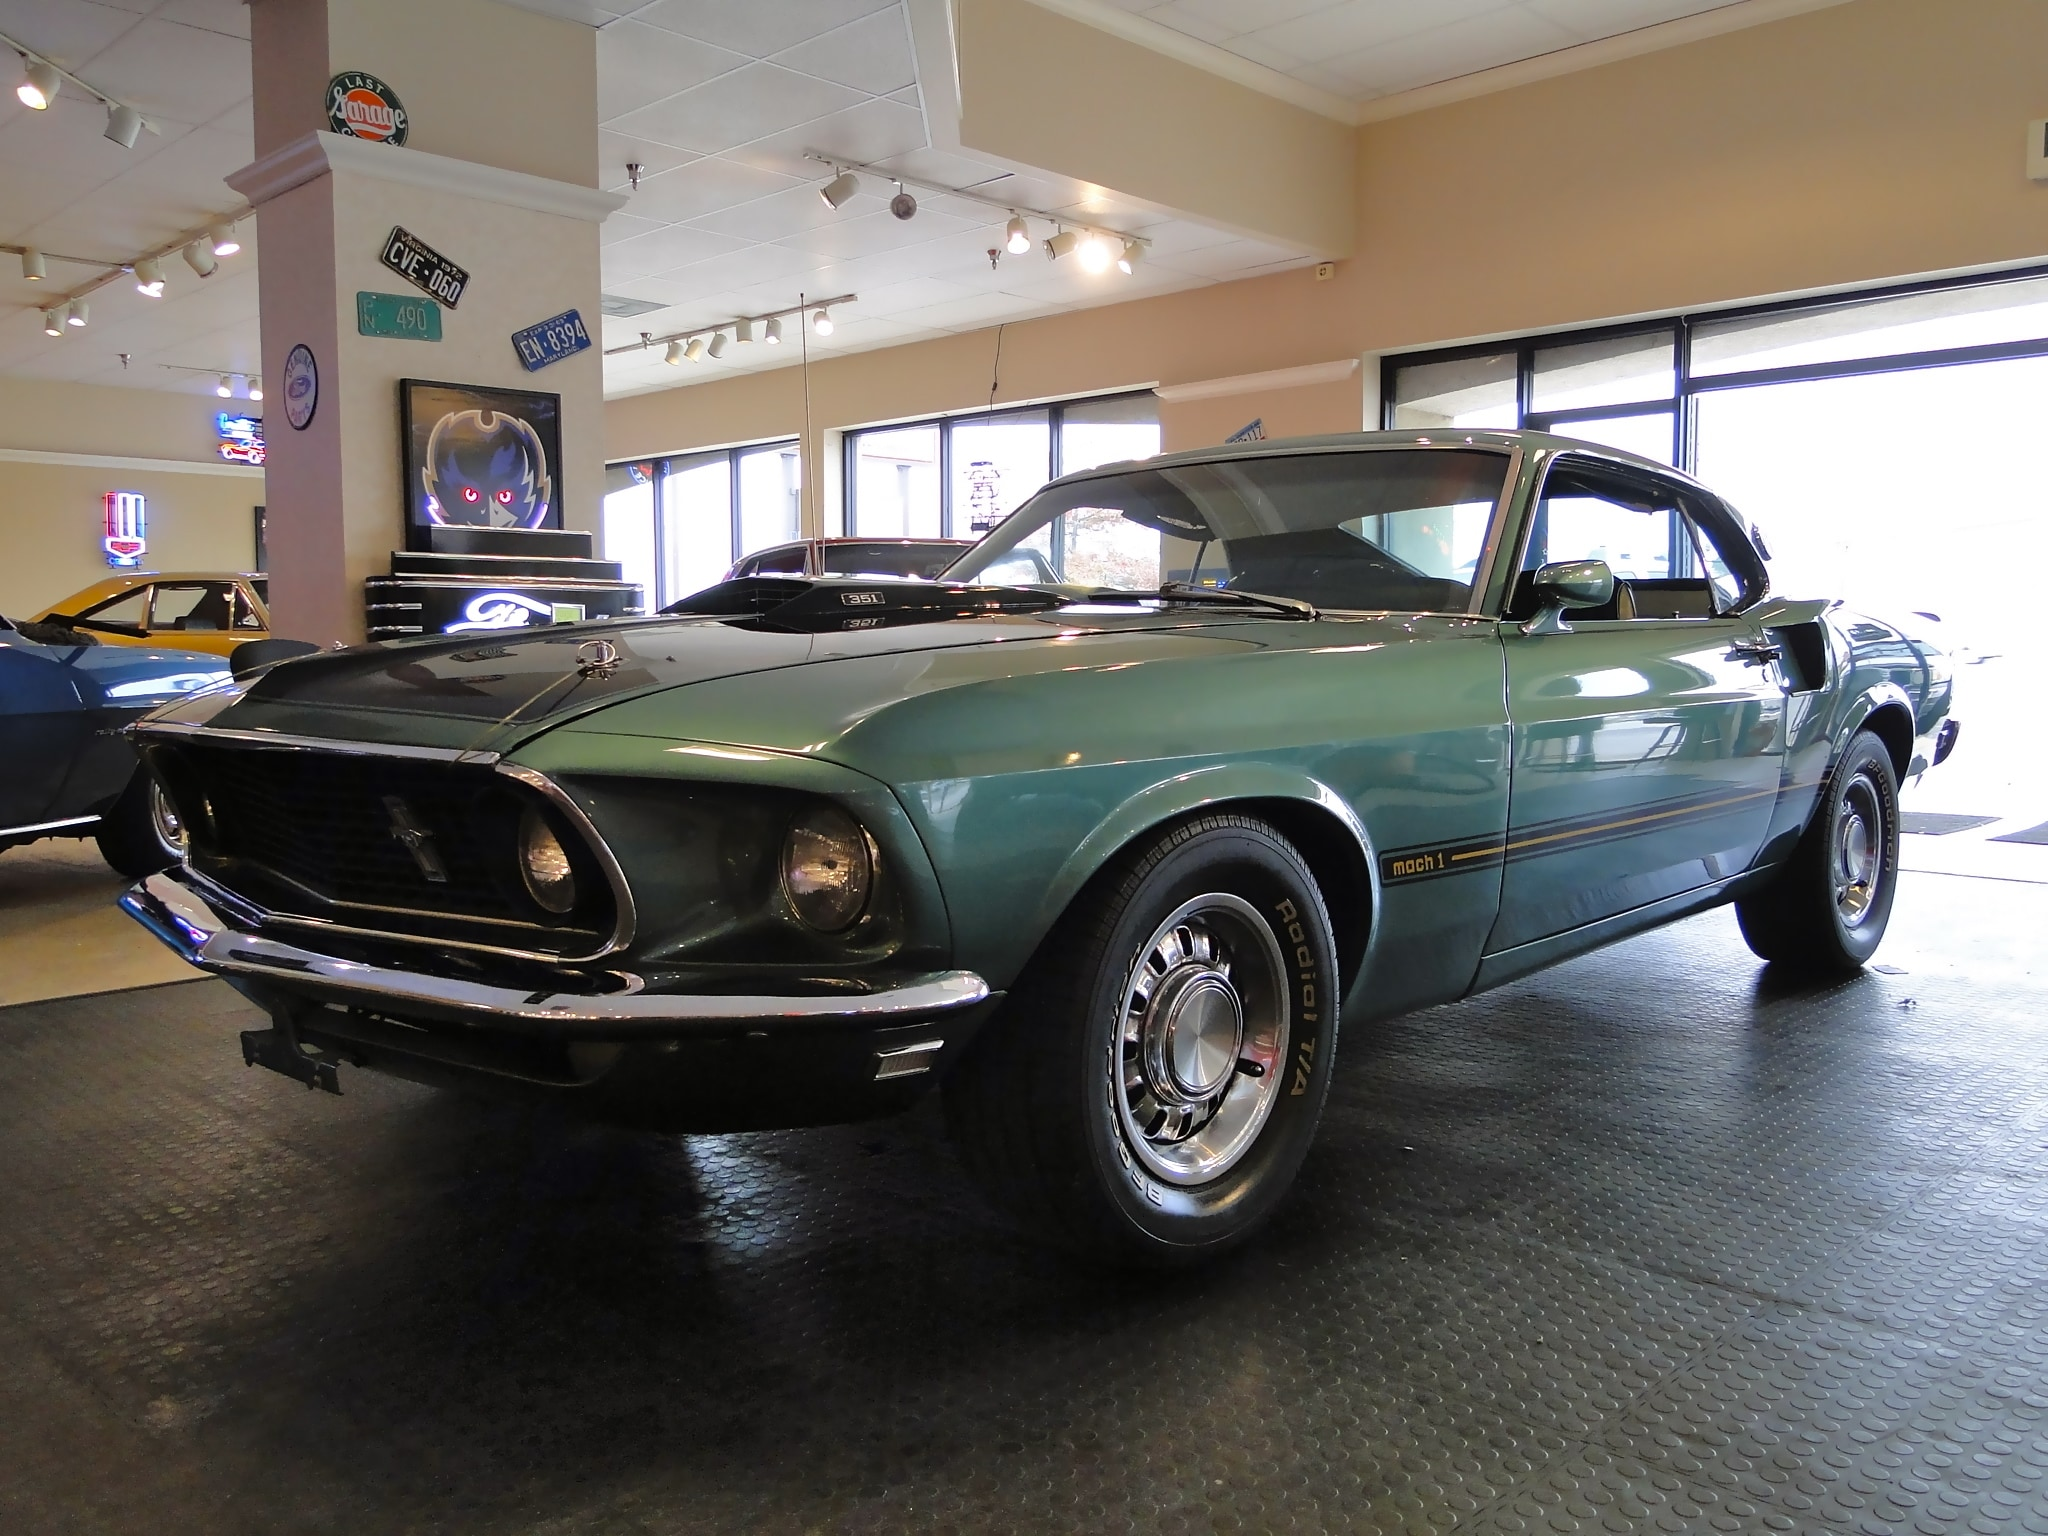 1969 ford mustang mach 1 sold to md fastback glen burnie md